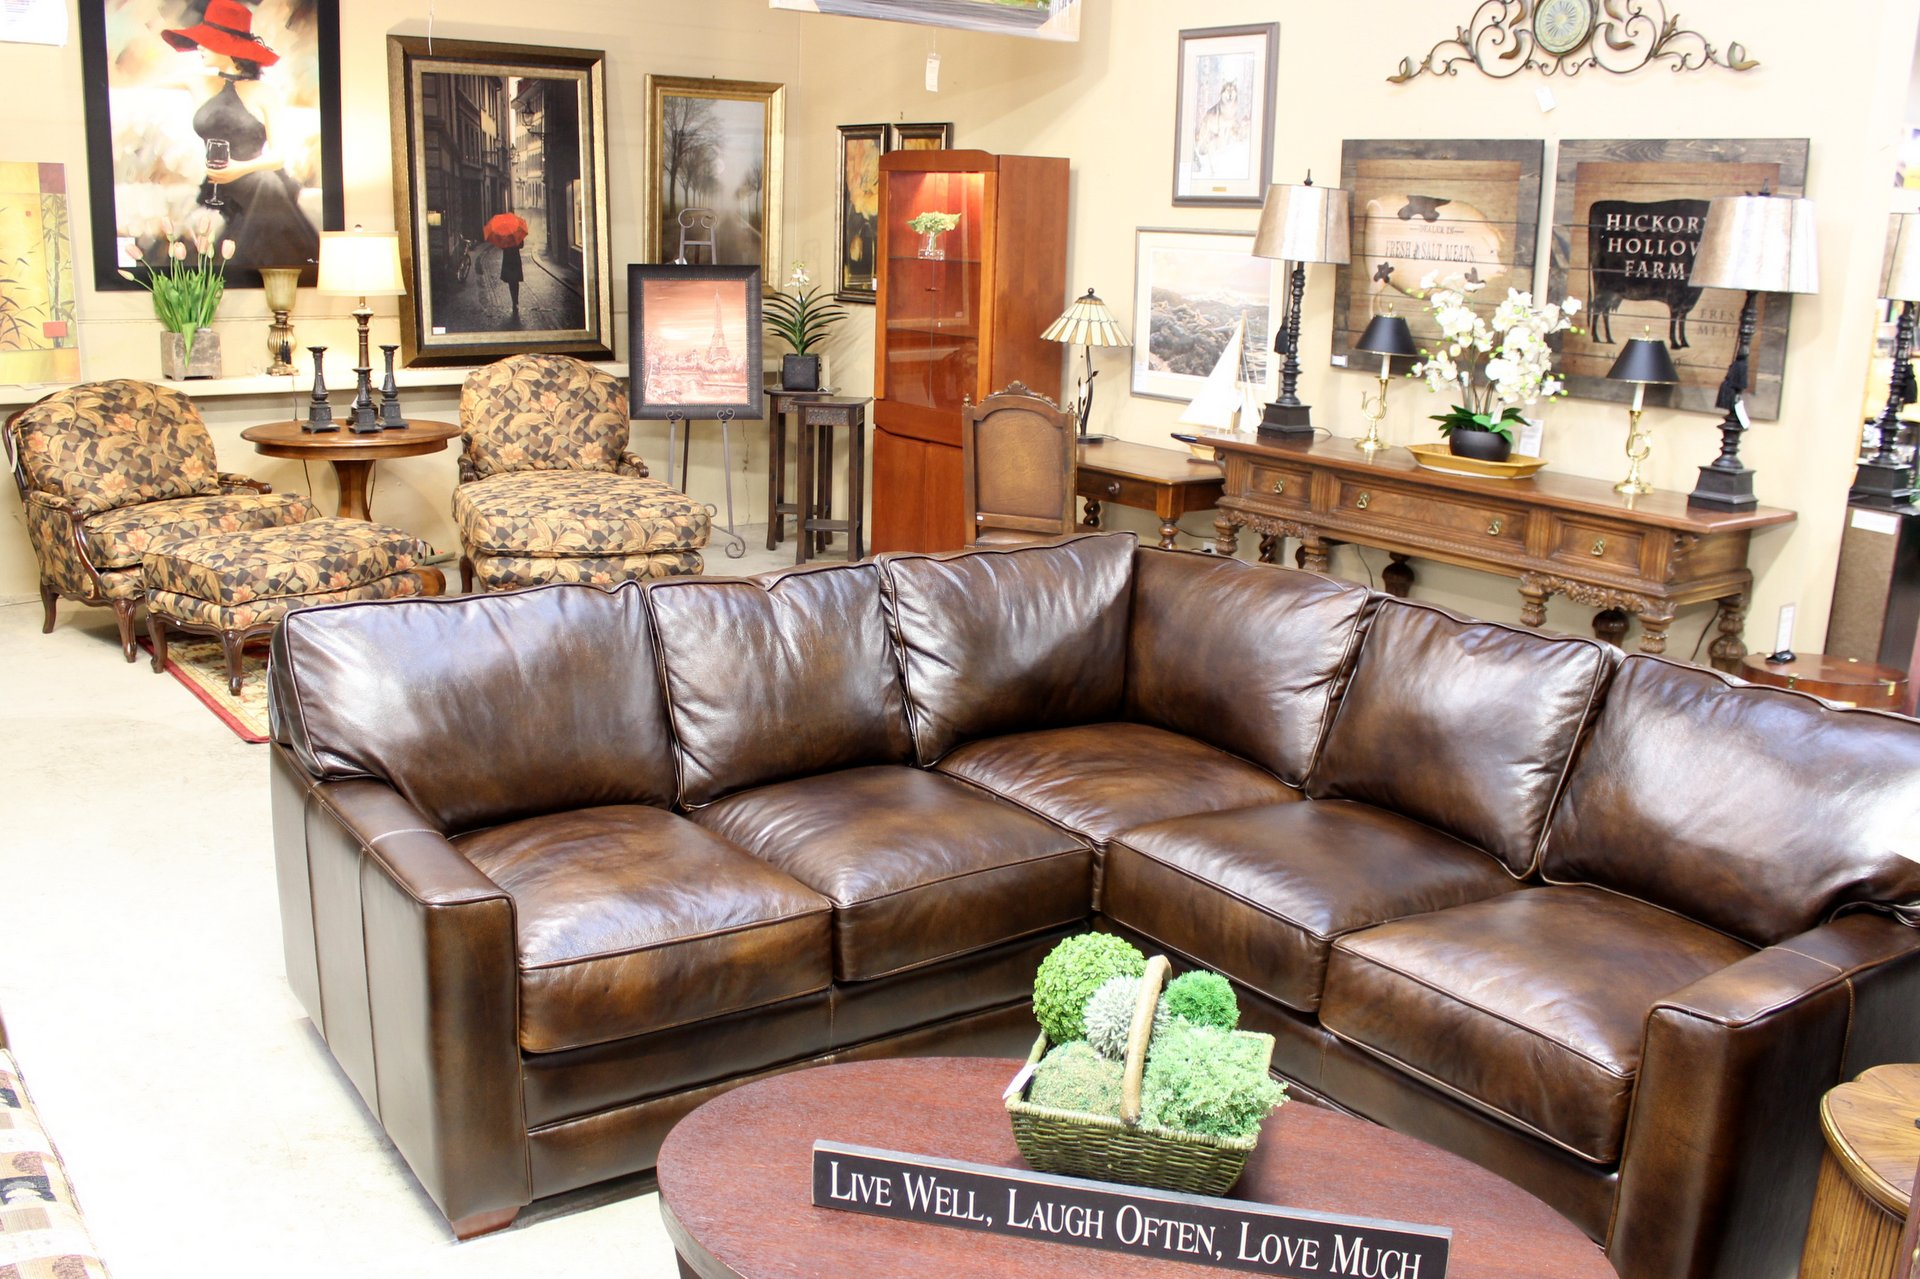 upscale consignment | upscale used furniture & decor